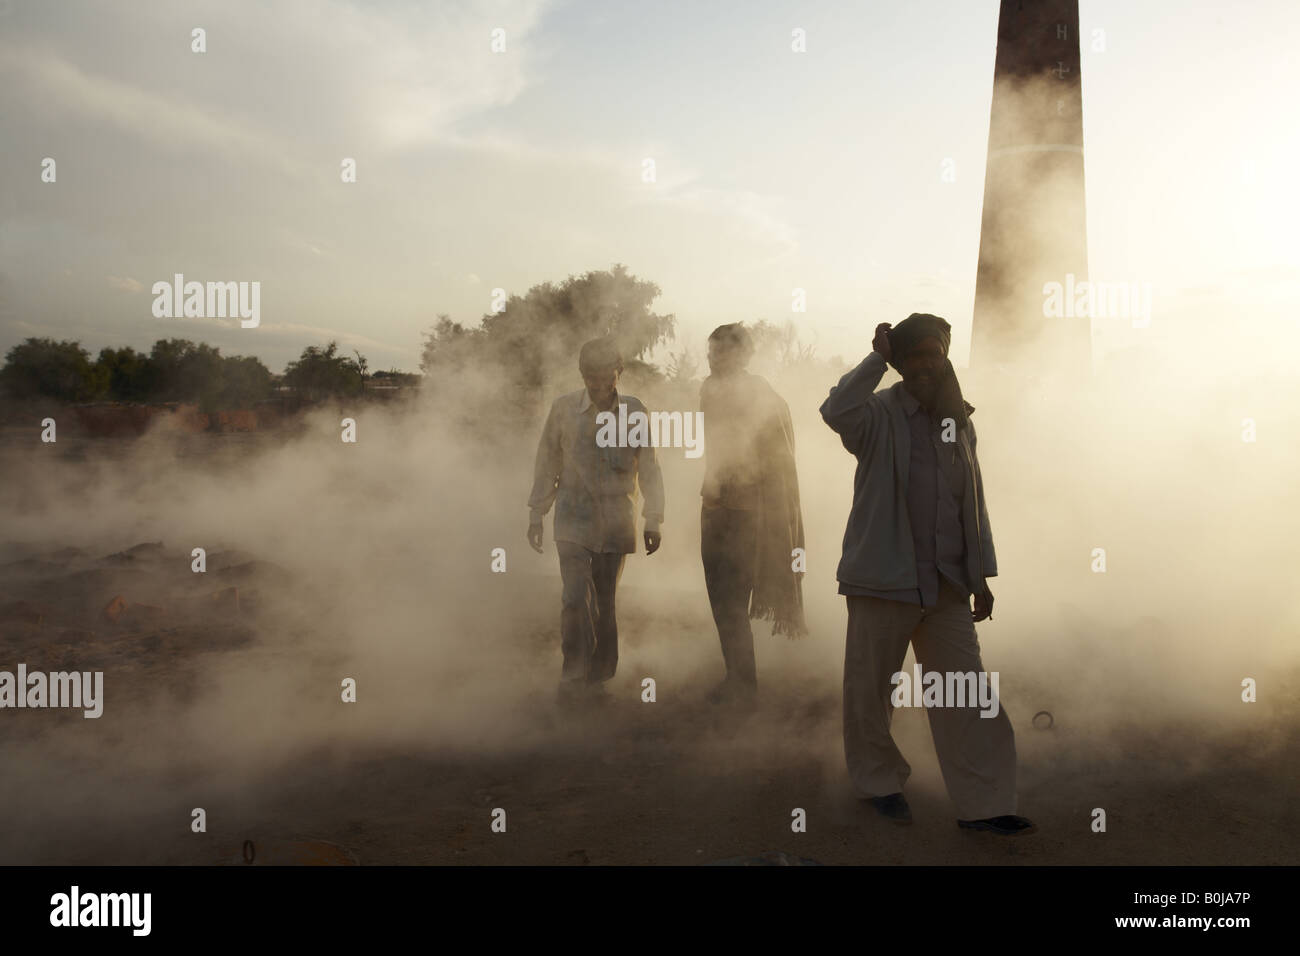 Men walking through the smoke from a brickworks in Rajasthan India - Stock Image